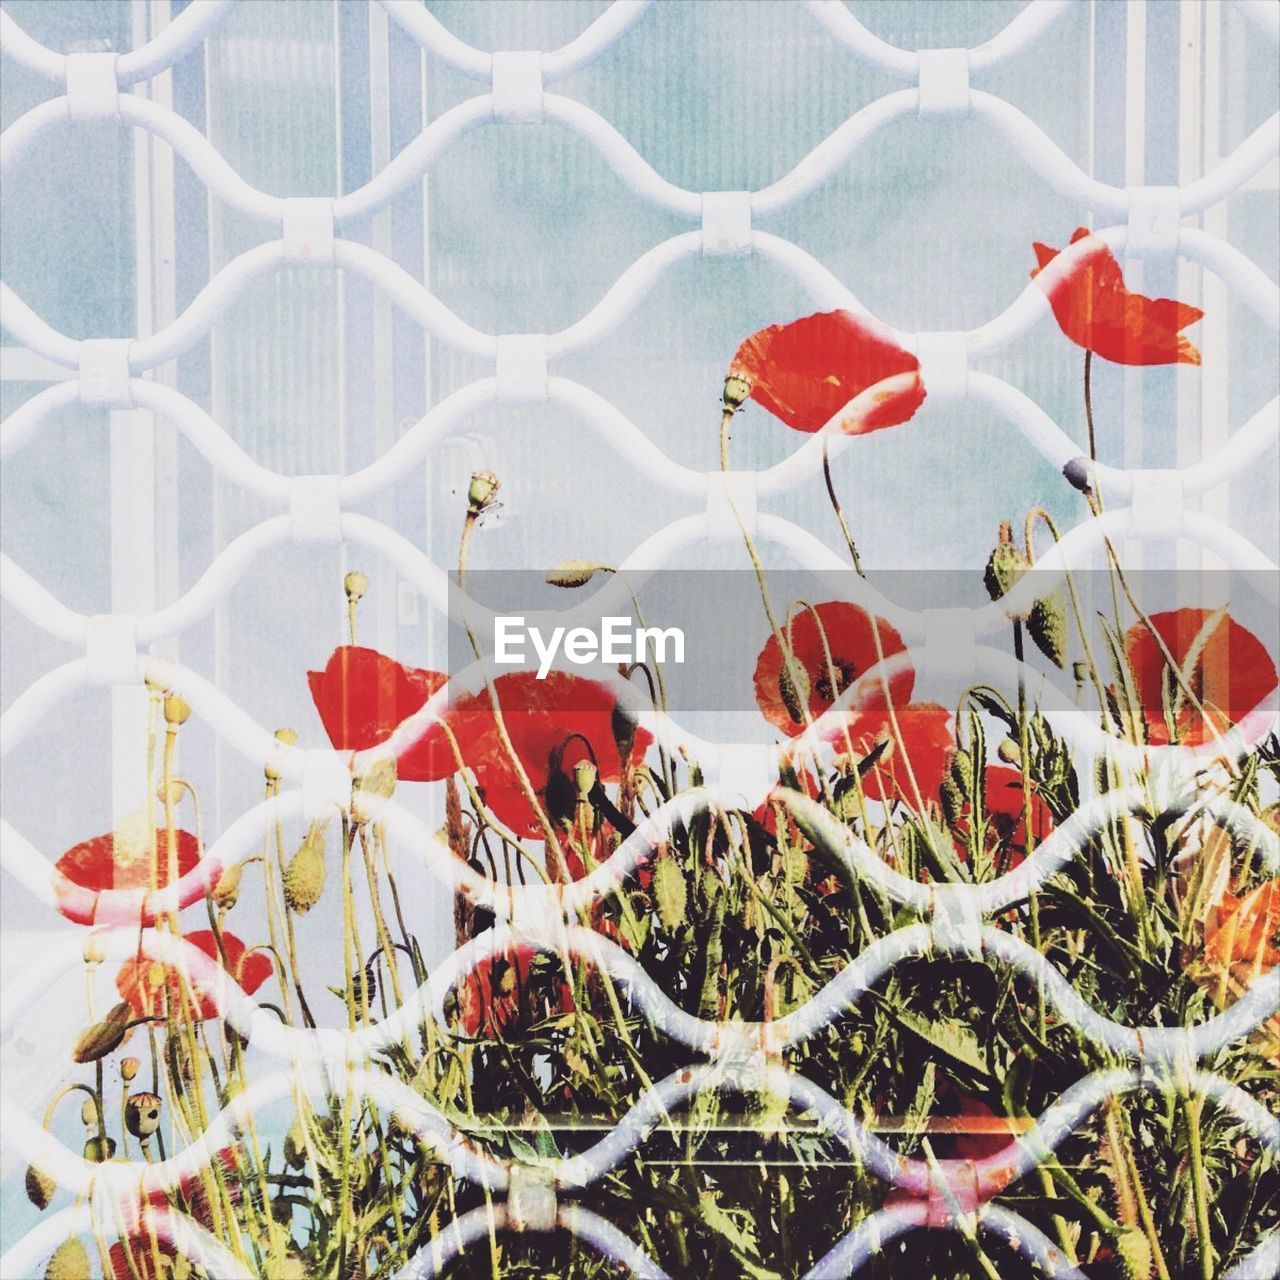 Double exposure of metallic fence and poppy flowers